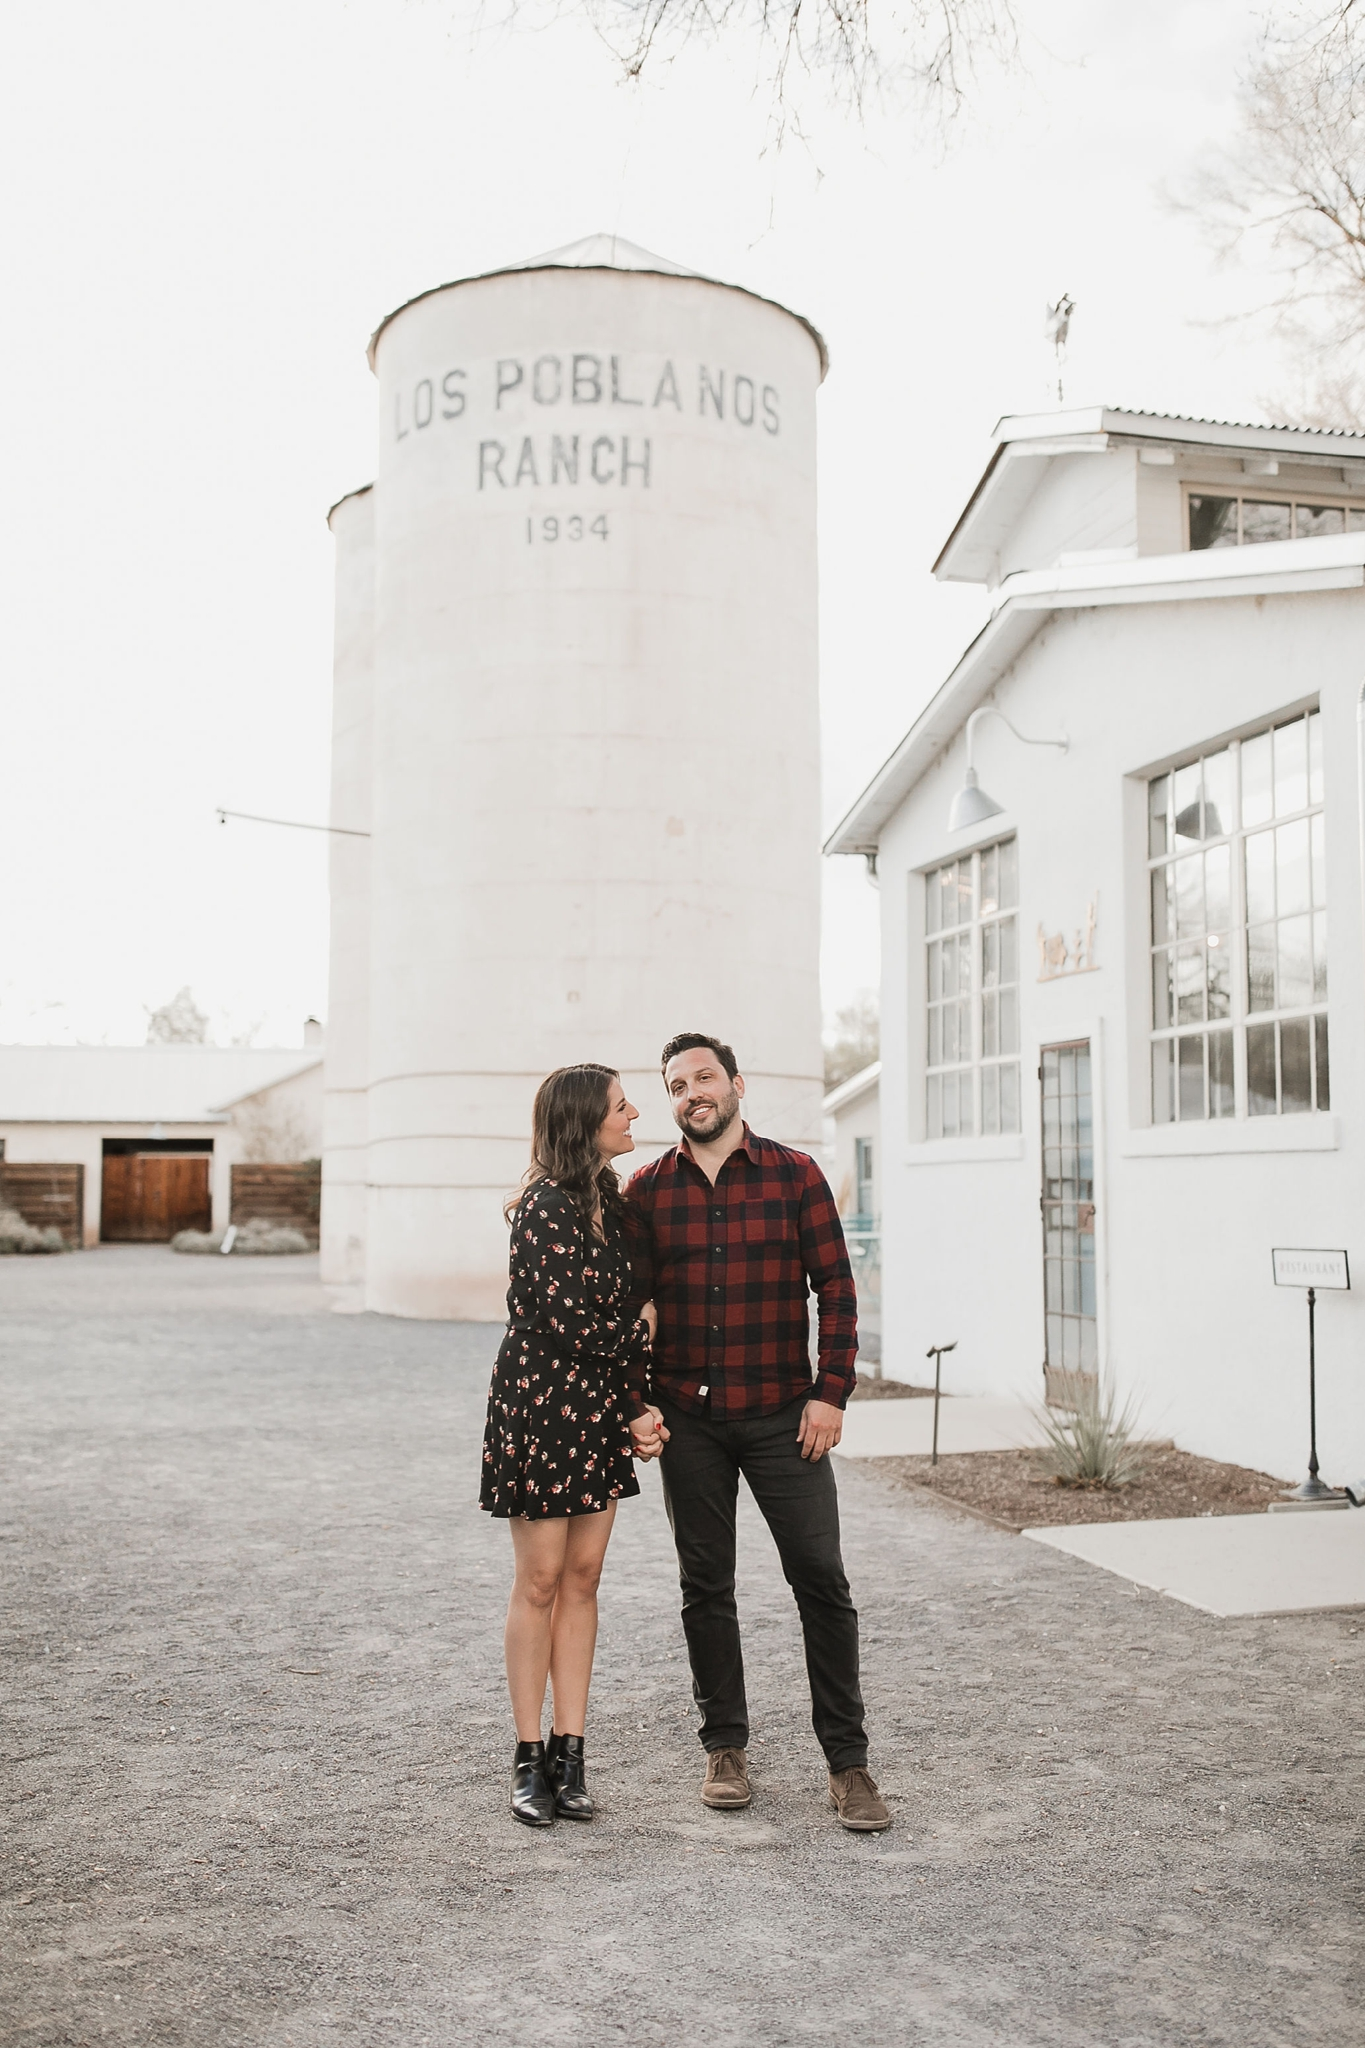 Alicia+lucia+photography+-+albuquerque+wedding+photographer+-+santa+fe+wedding+photography+-+new+mexico+wedding+photographer+-+new+mexico+wedding+-+new+mexico+engagement+-+los+poblanos+engagement+-+los+poblanos+wedding+-+fall+wedding_0009.jpg